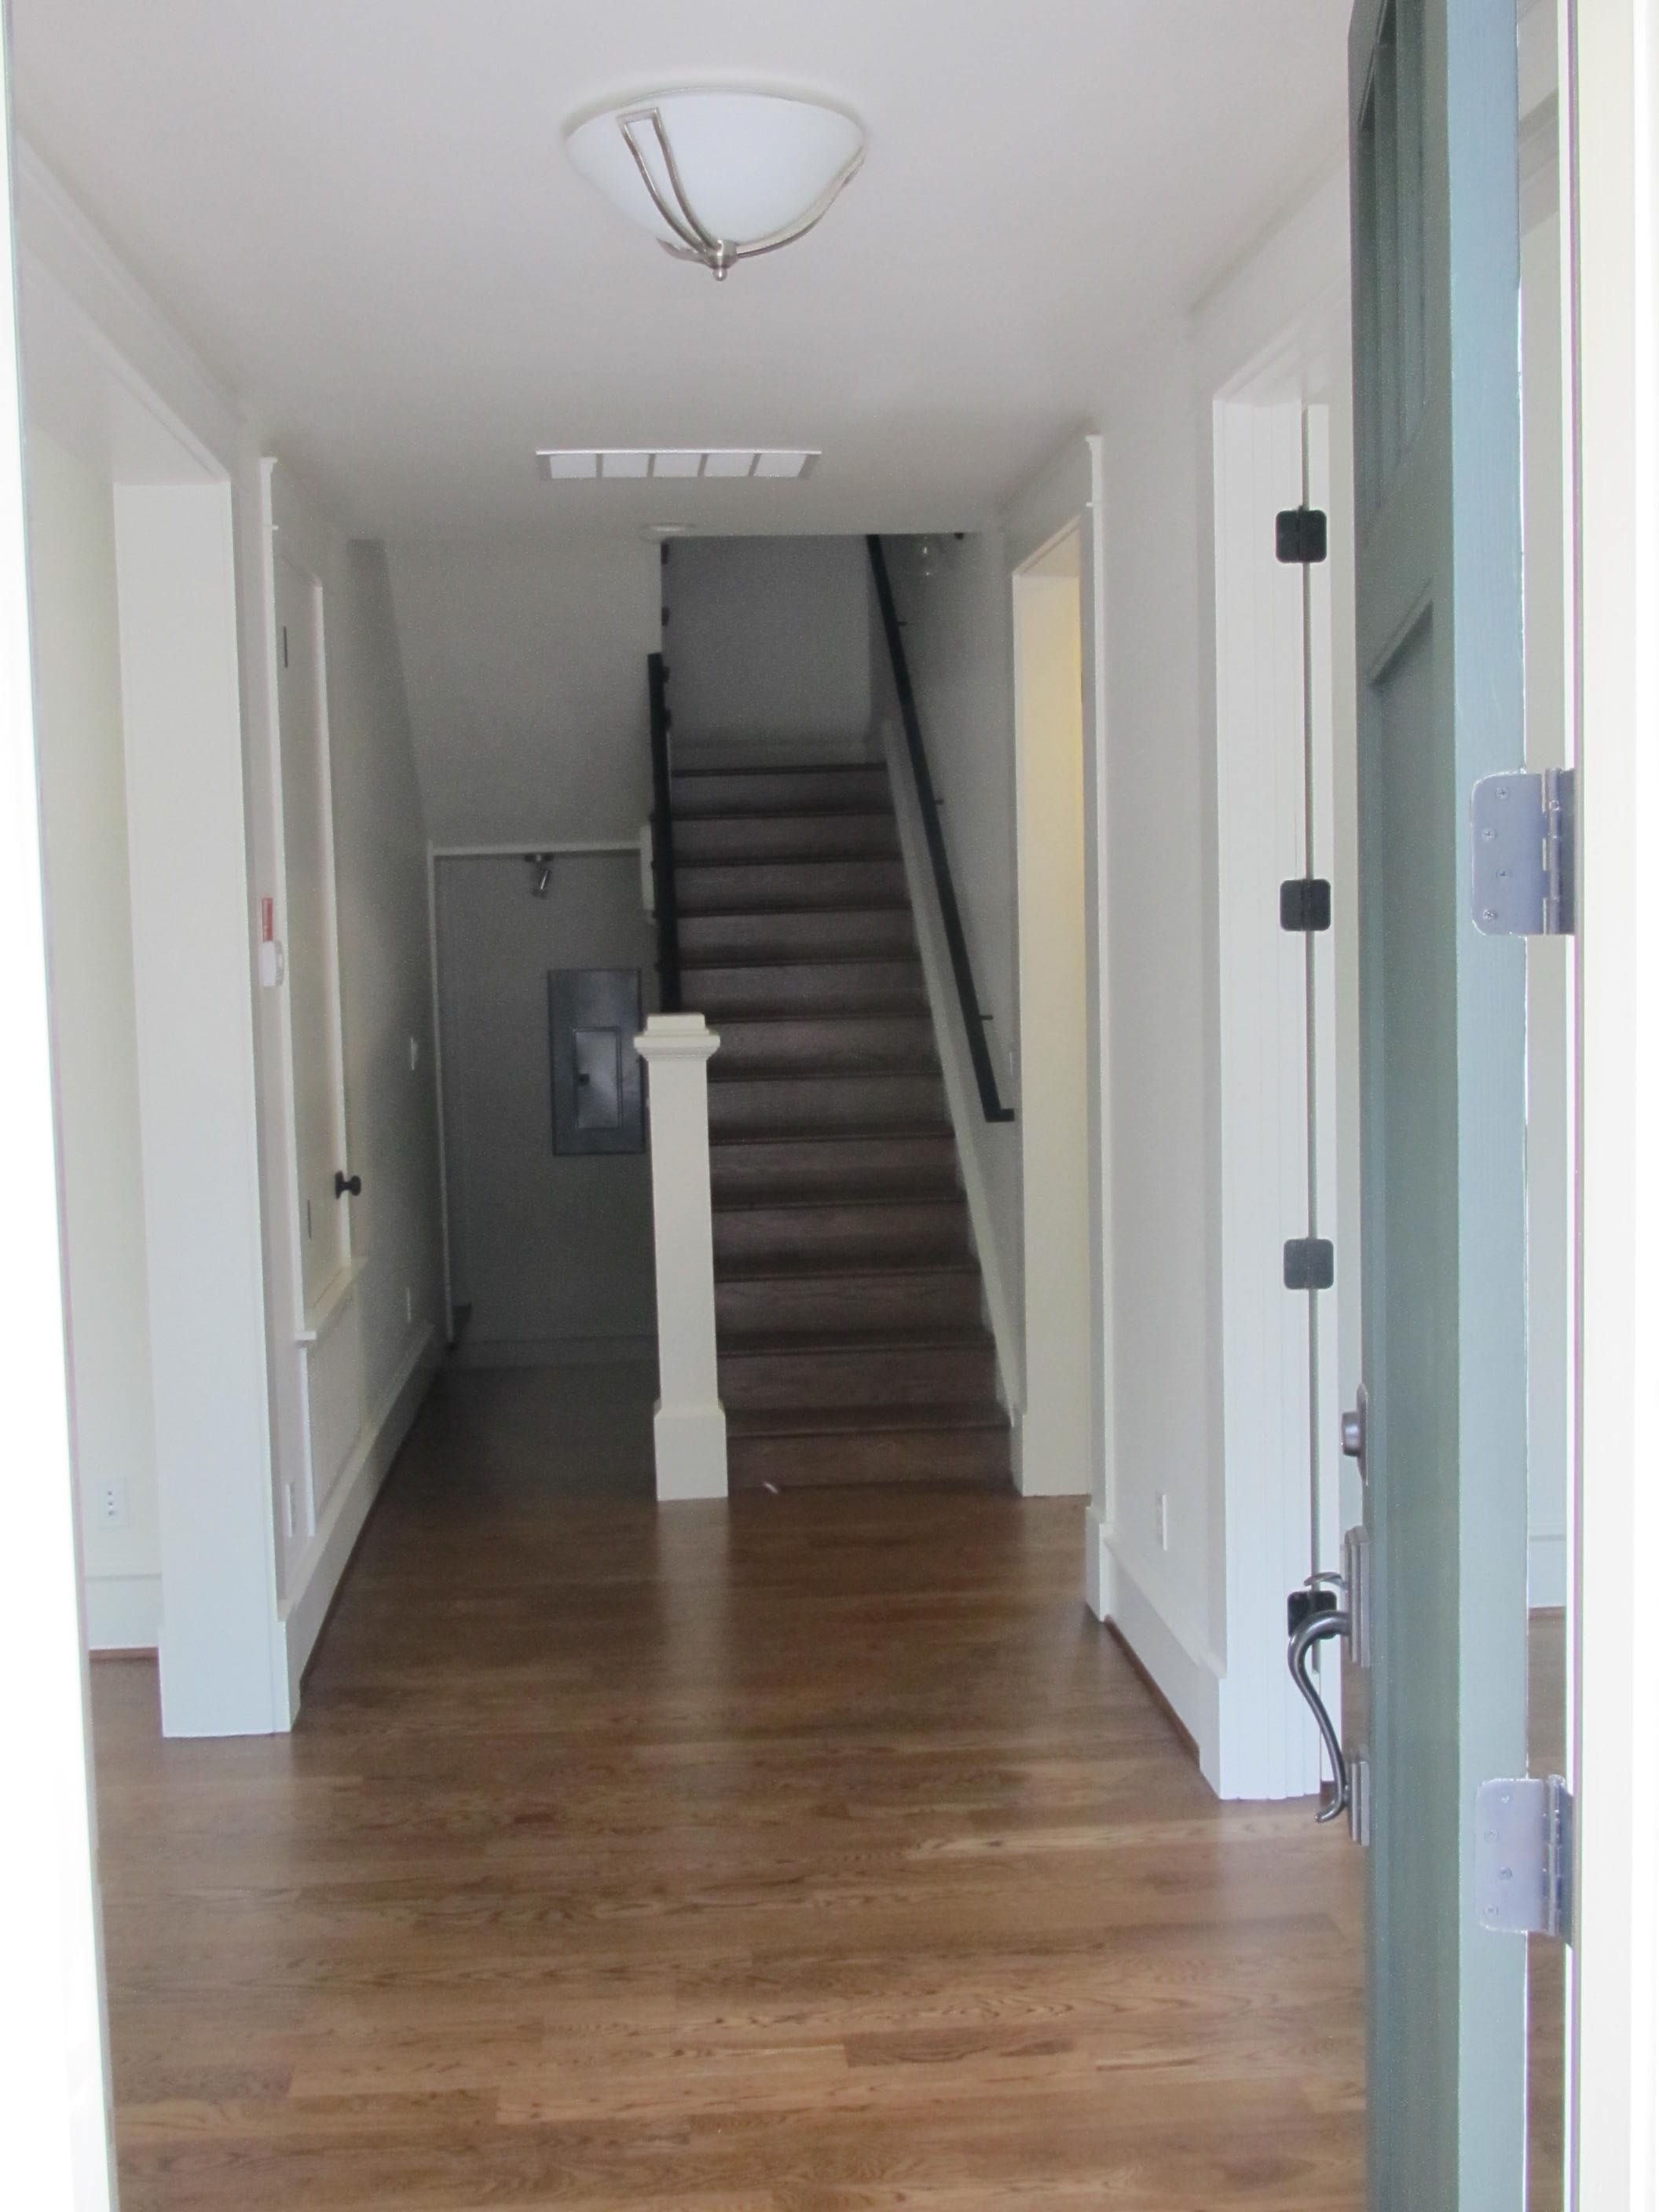 Stairwell entry